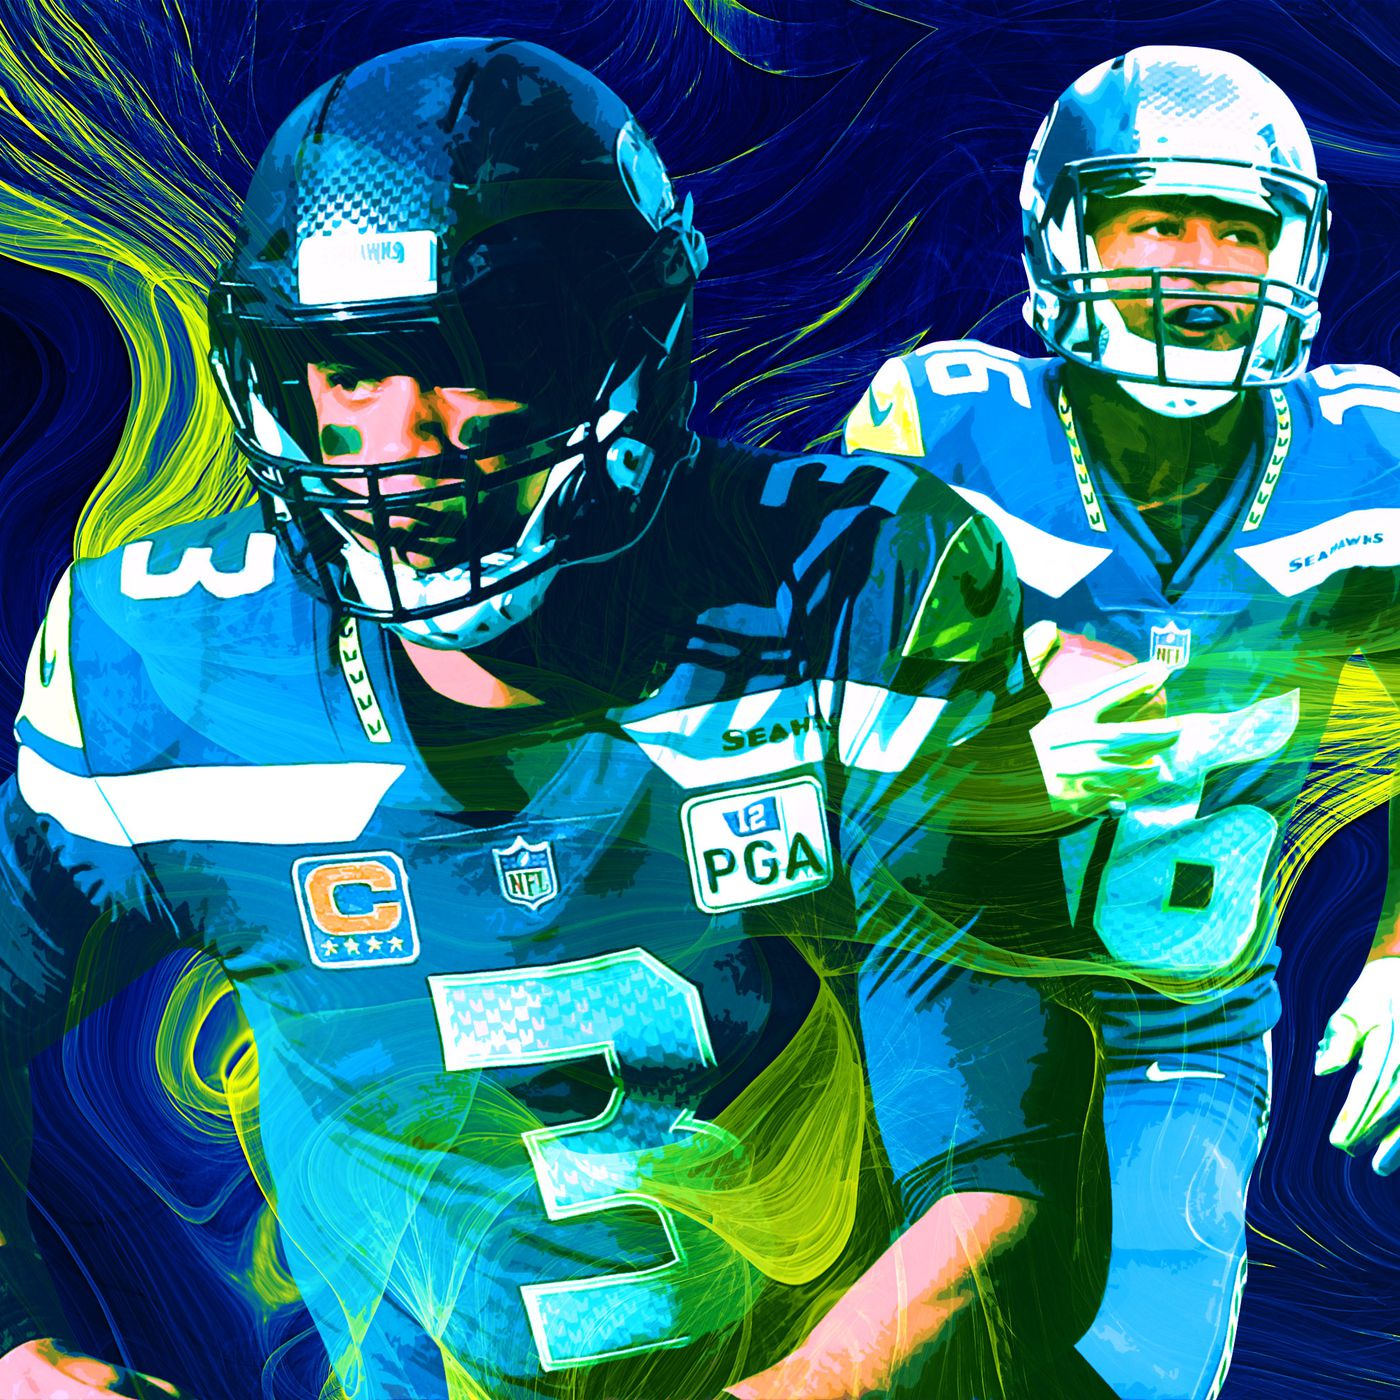 c1e7054e Russell Wilson's Deep Passing Is the Key to a Seahawks Playoff Run - The  Ringer